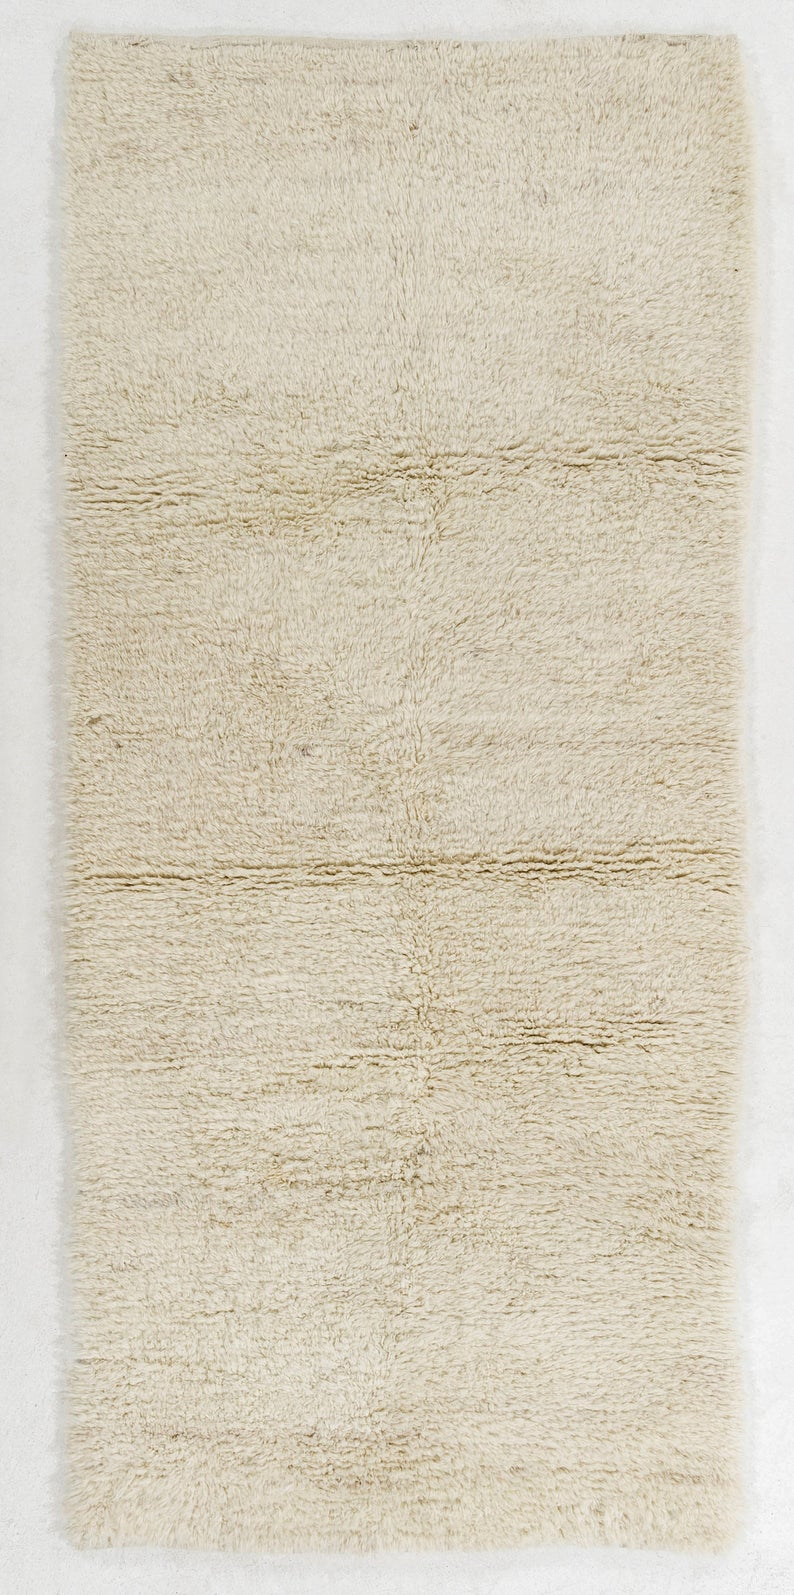 100% Natural Wool Rug for Minimalist Decor. Simple is ...